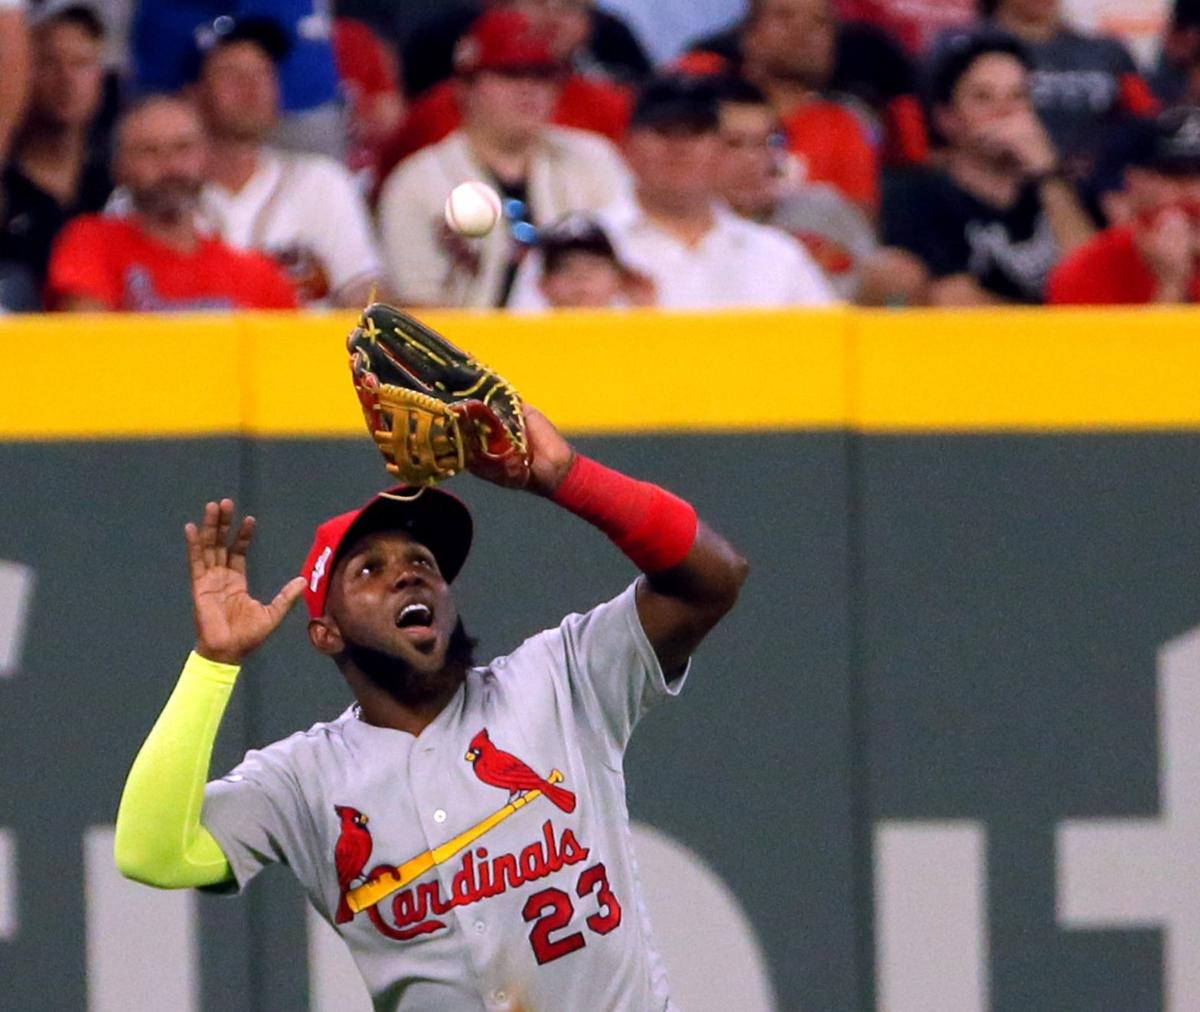 Cardinals' outfield is in flux for next season